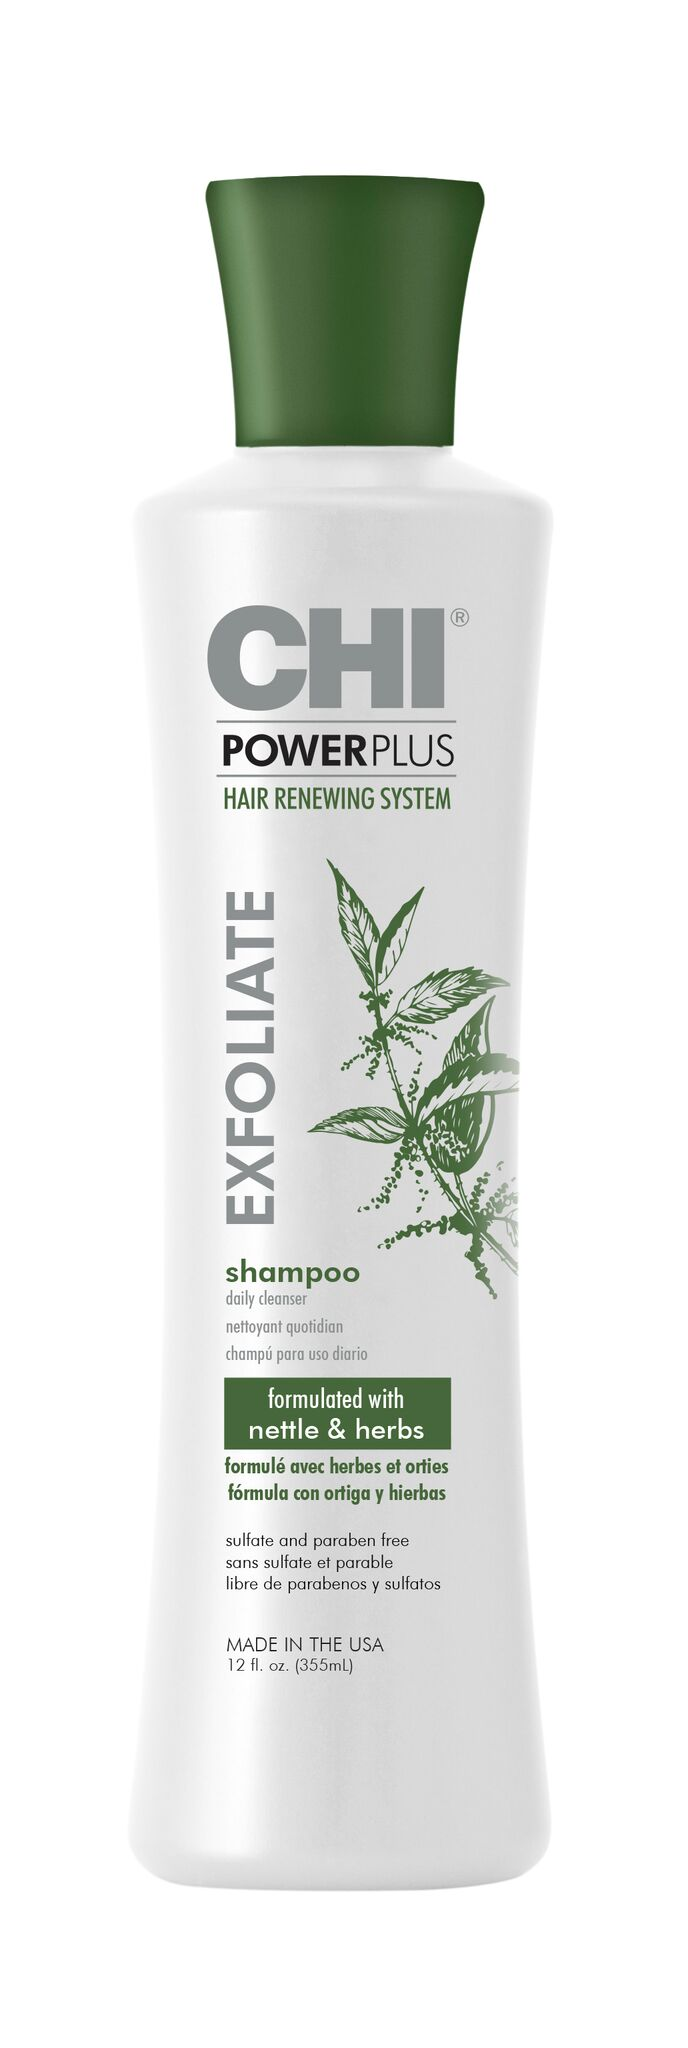 CHI Power Plus Line Shampoo 12oz preview - CHI POWER PLUS